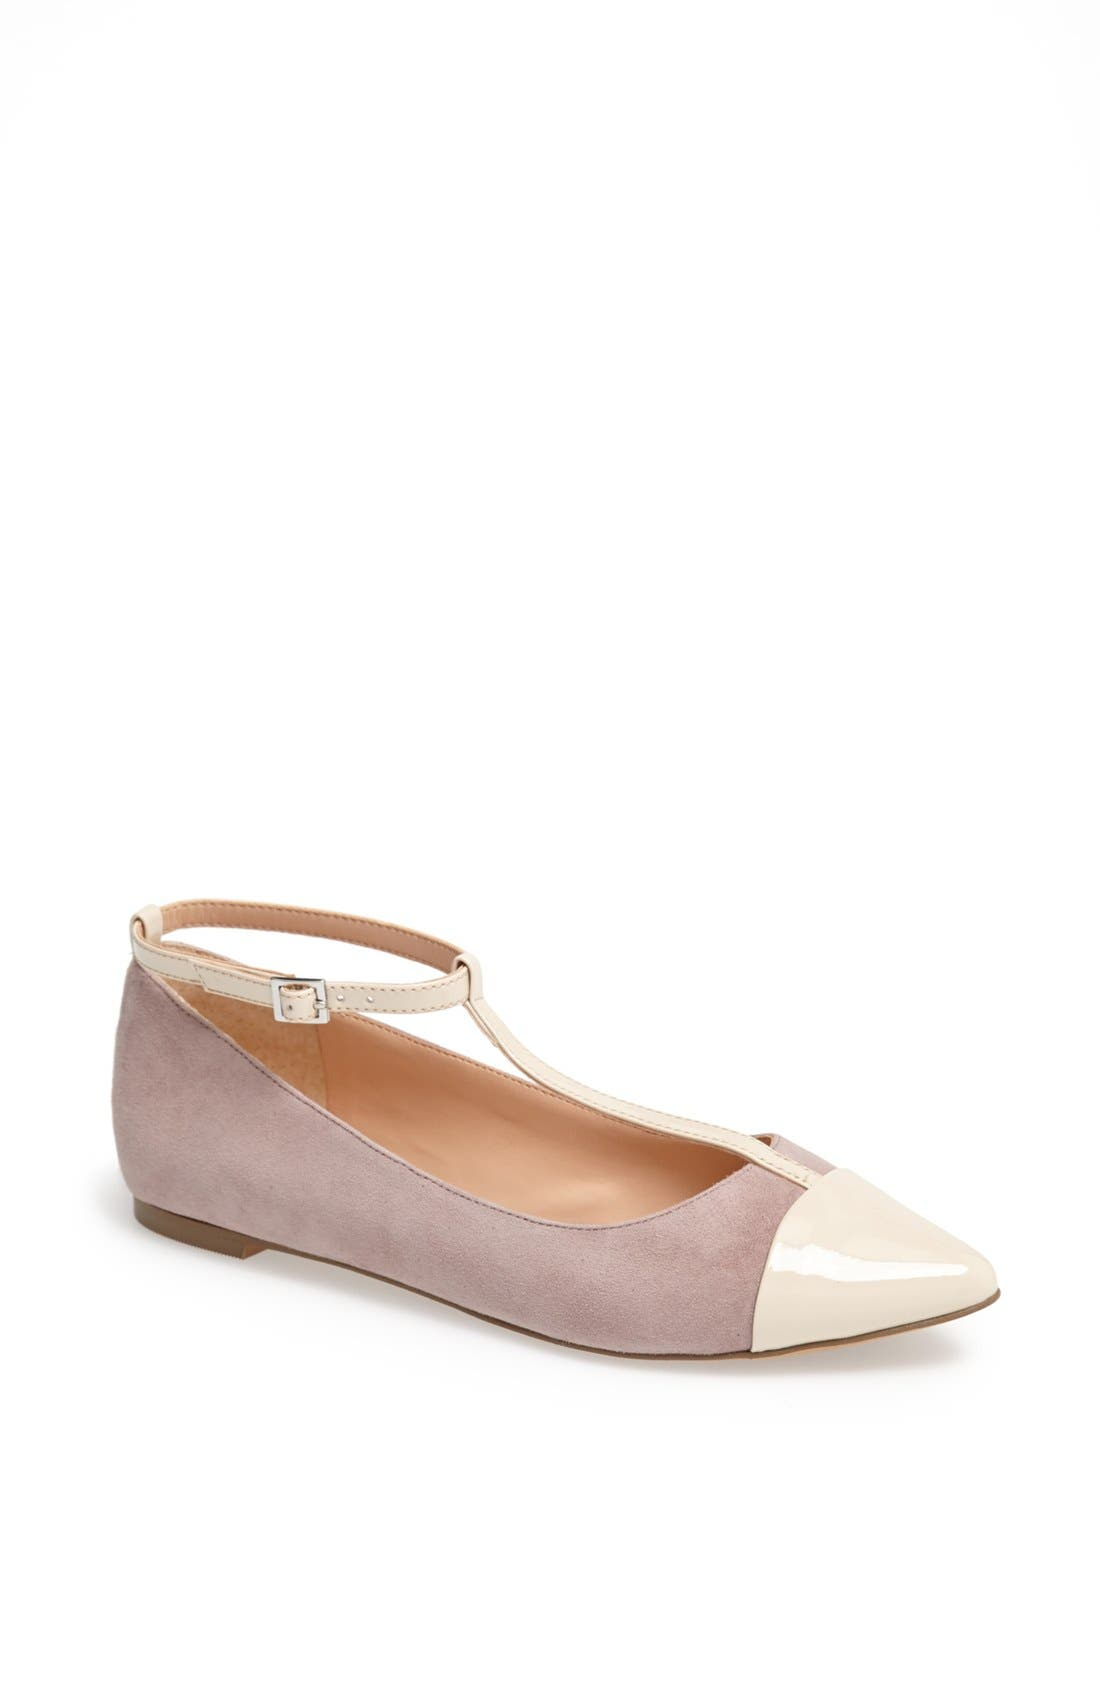 ,                             Julianne Hough for Sole Society 'Addy' Flat,                             Main thumbnail 7, color,                             060